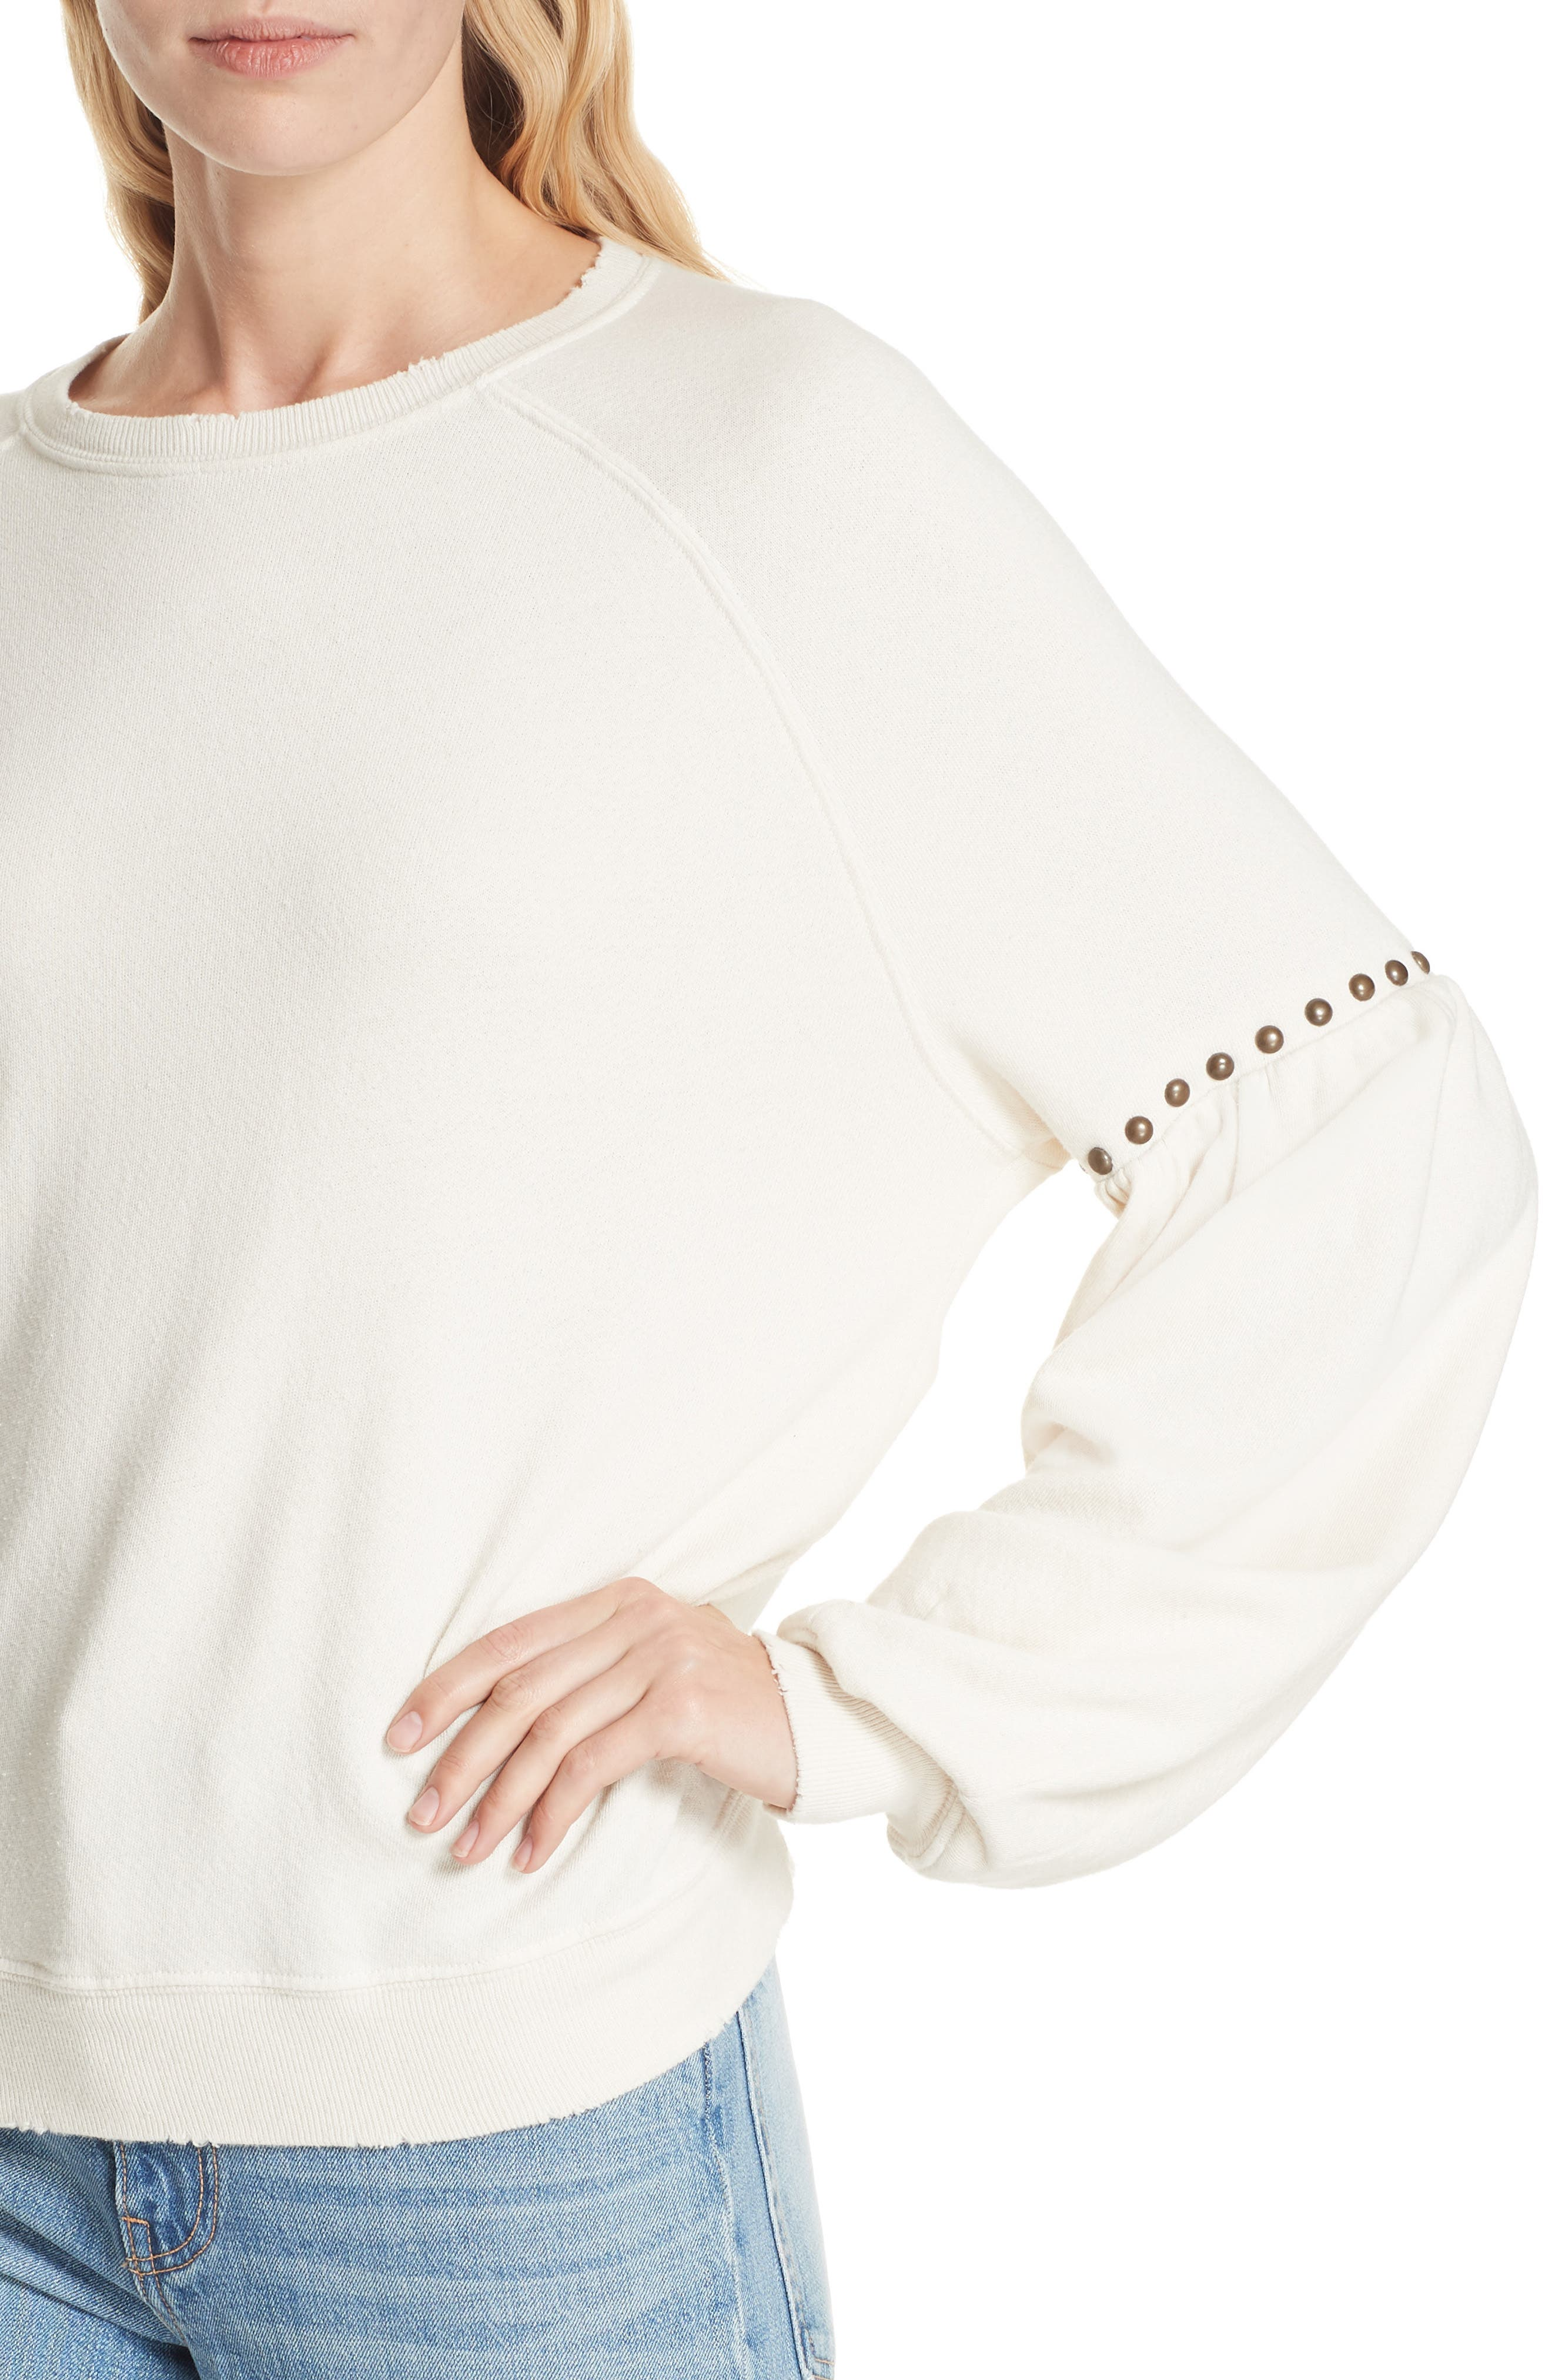 The Bishop Sleeve Studded Sweatshirt,                             Alternate thumbnail 4, color,                             WASHED WHITE W/ STUDS